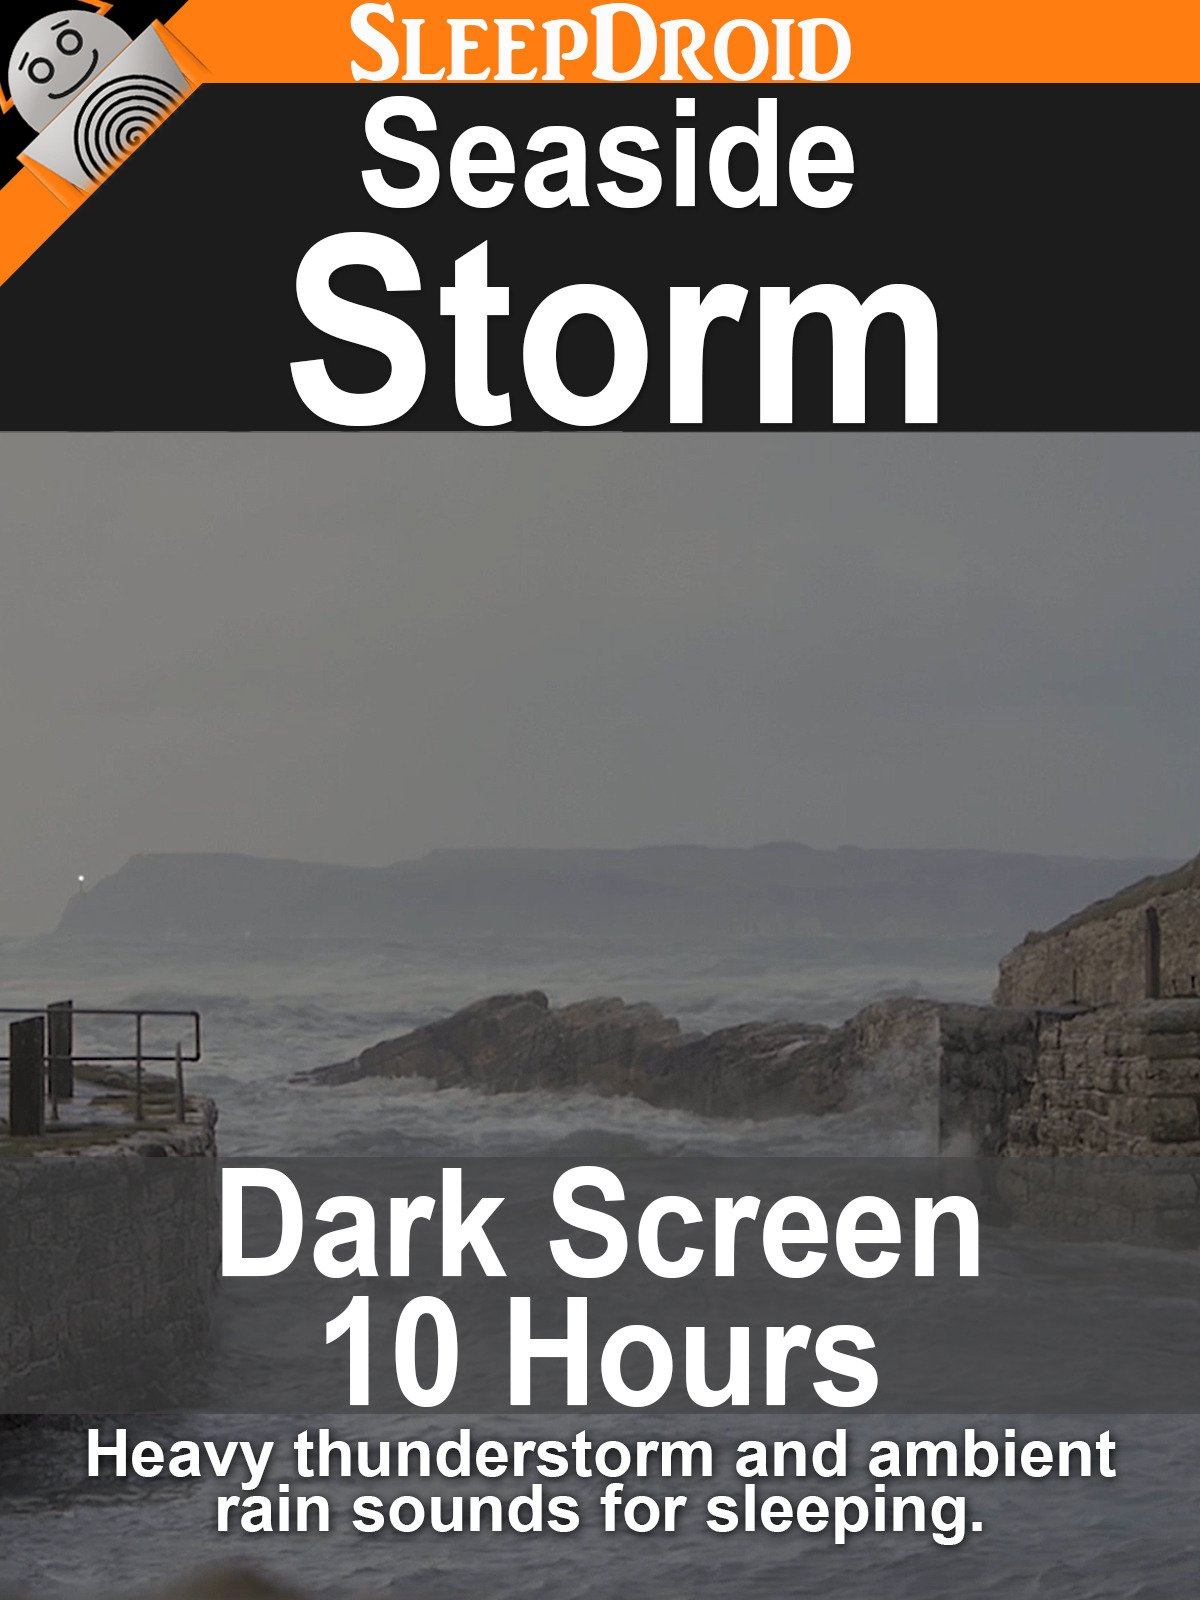 Seaside storm: Dark Screen 10 Hours Heavy Thunderstorm and Ambient Rain Sounds for Sleeping